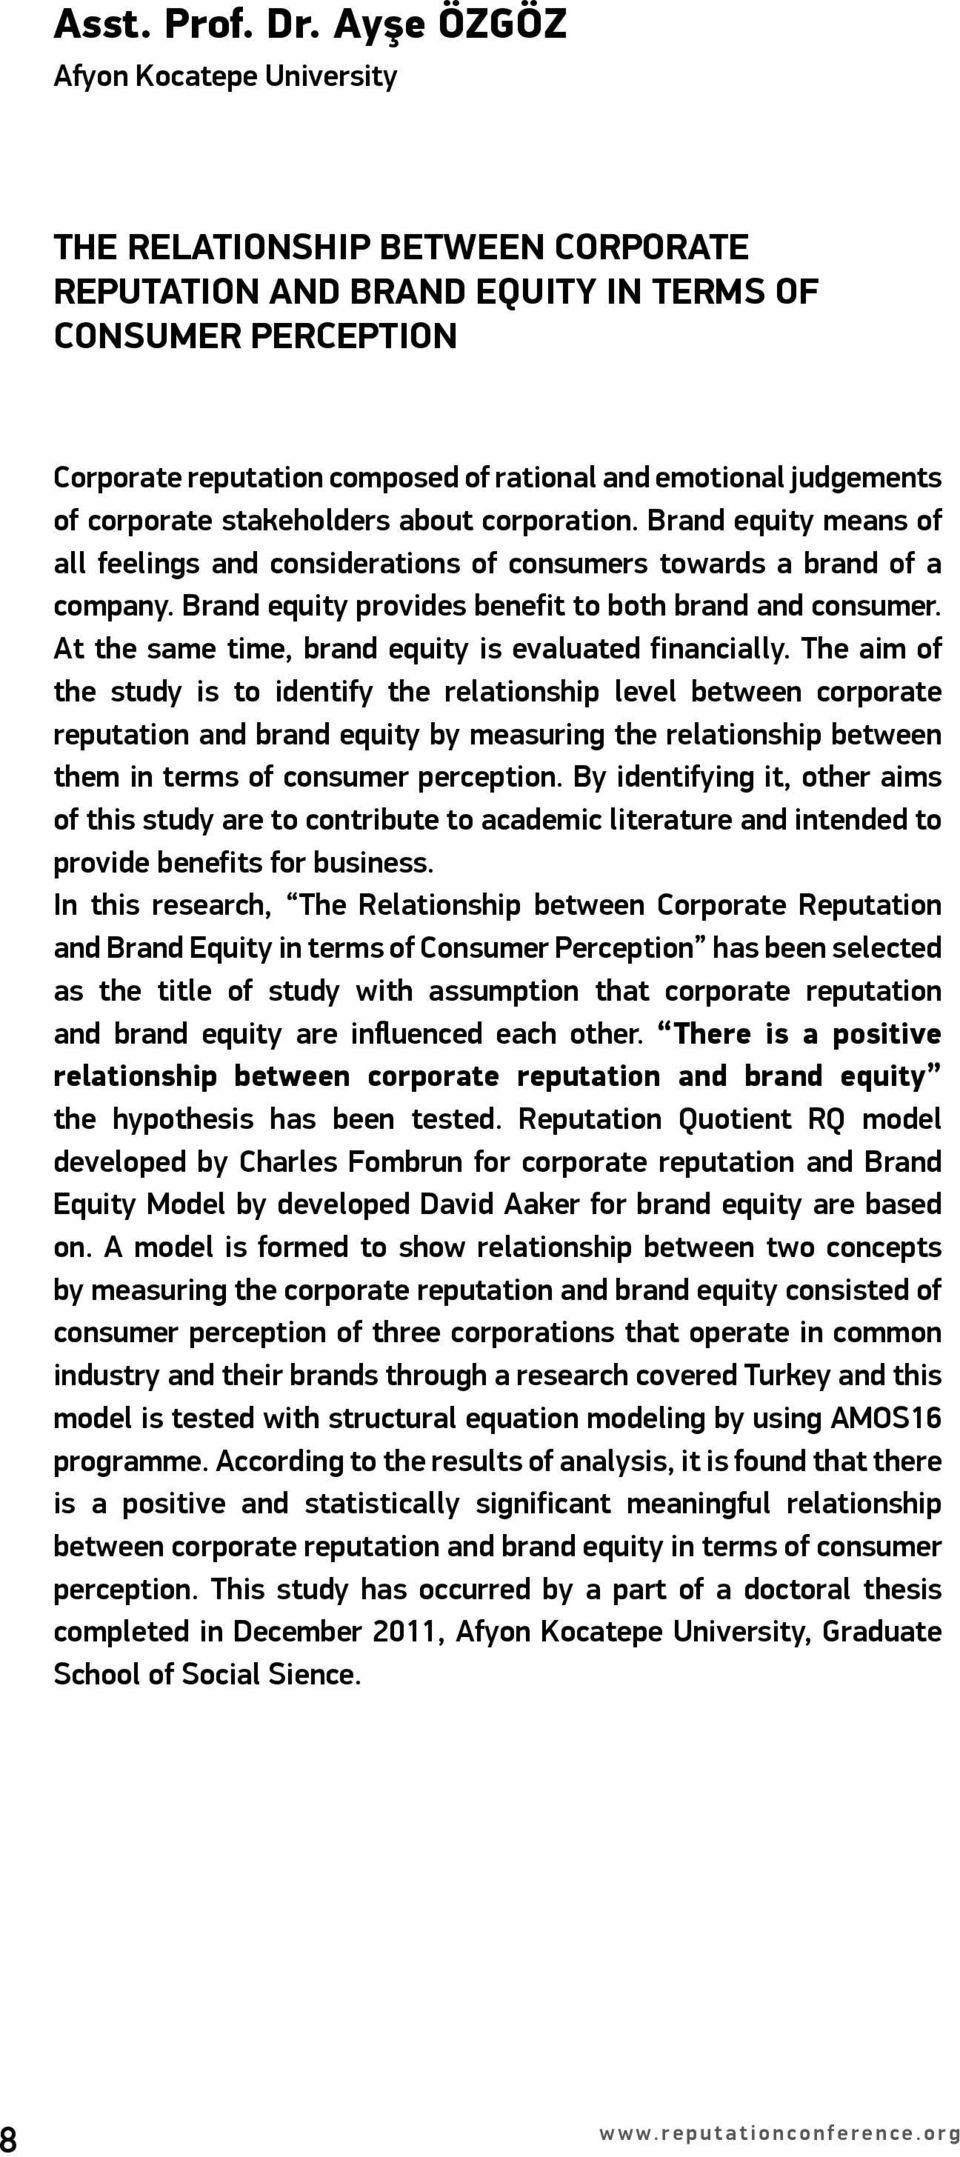 of corporate stakeholders about corporation. Brand equity means of all feelings and considerations of consumers towards a brand of a company. Brand equity provides benefit to both brand and consumer.